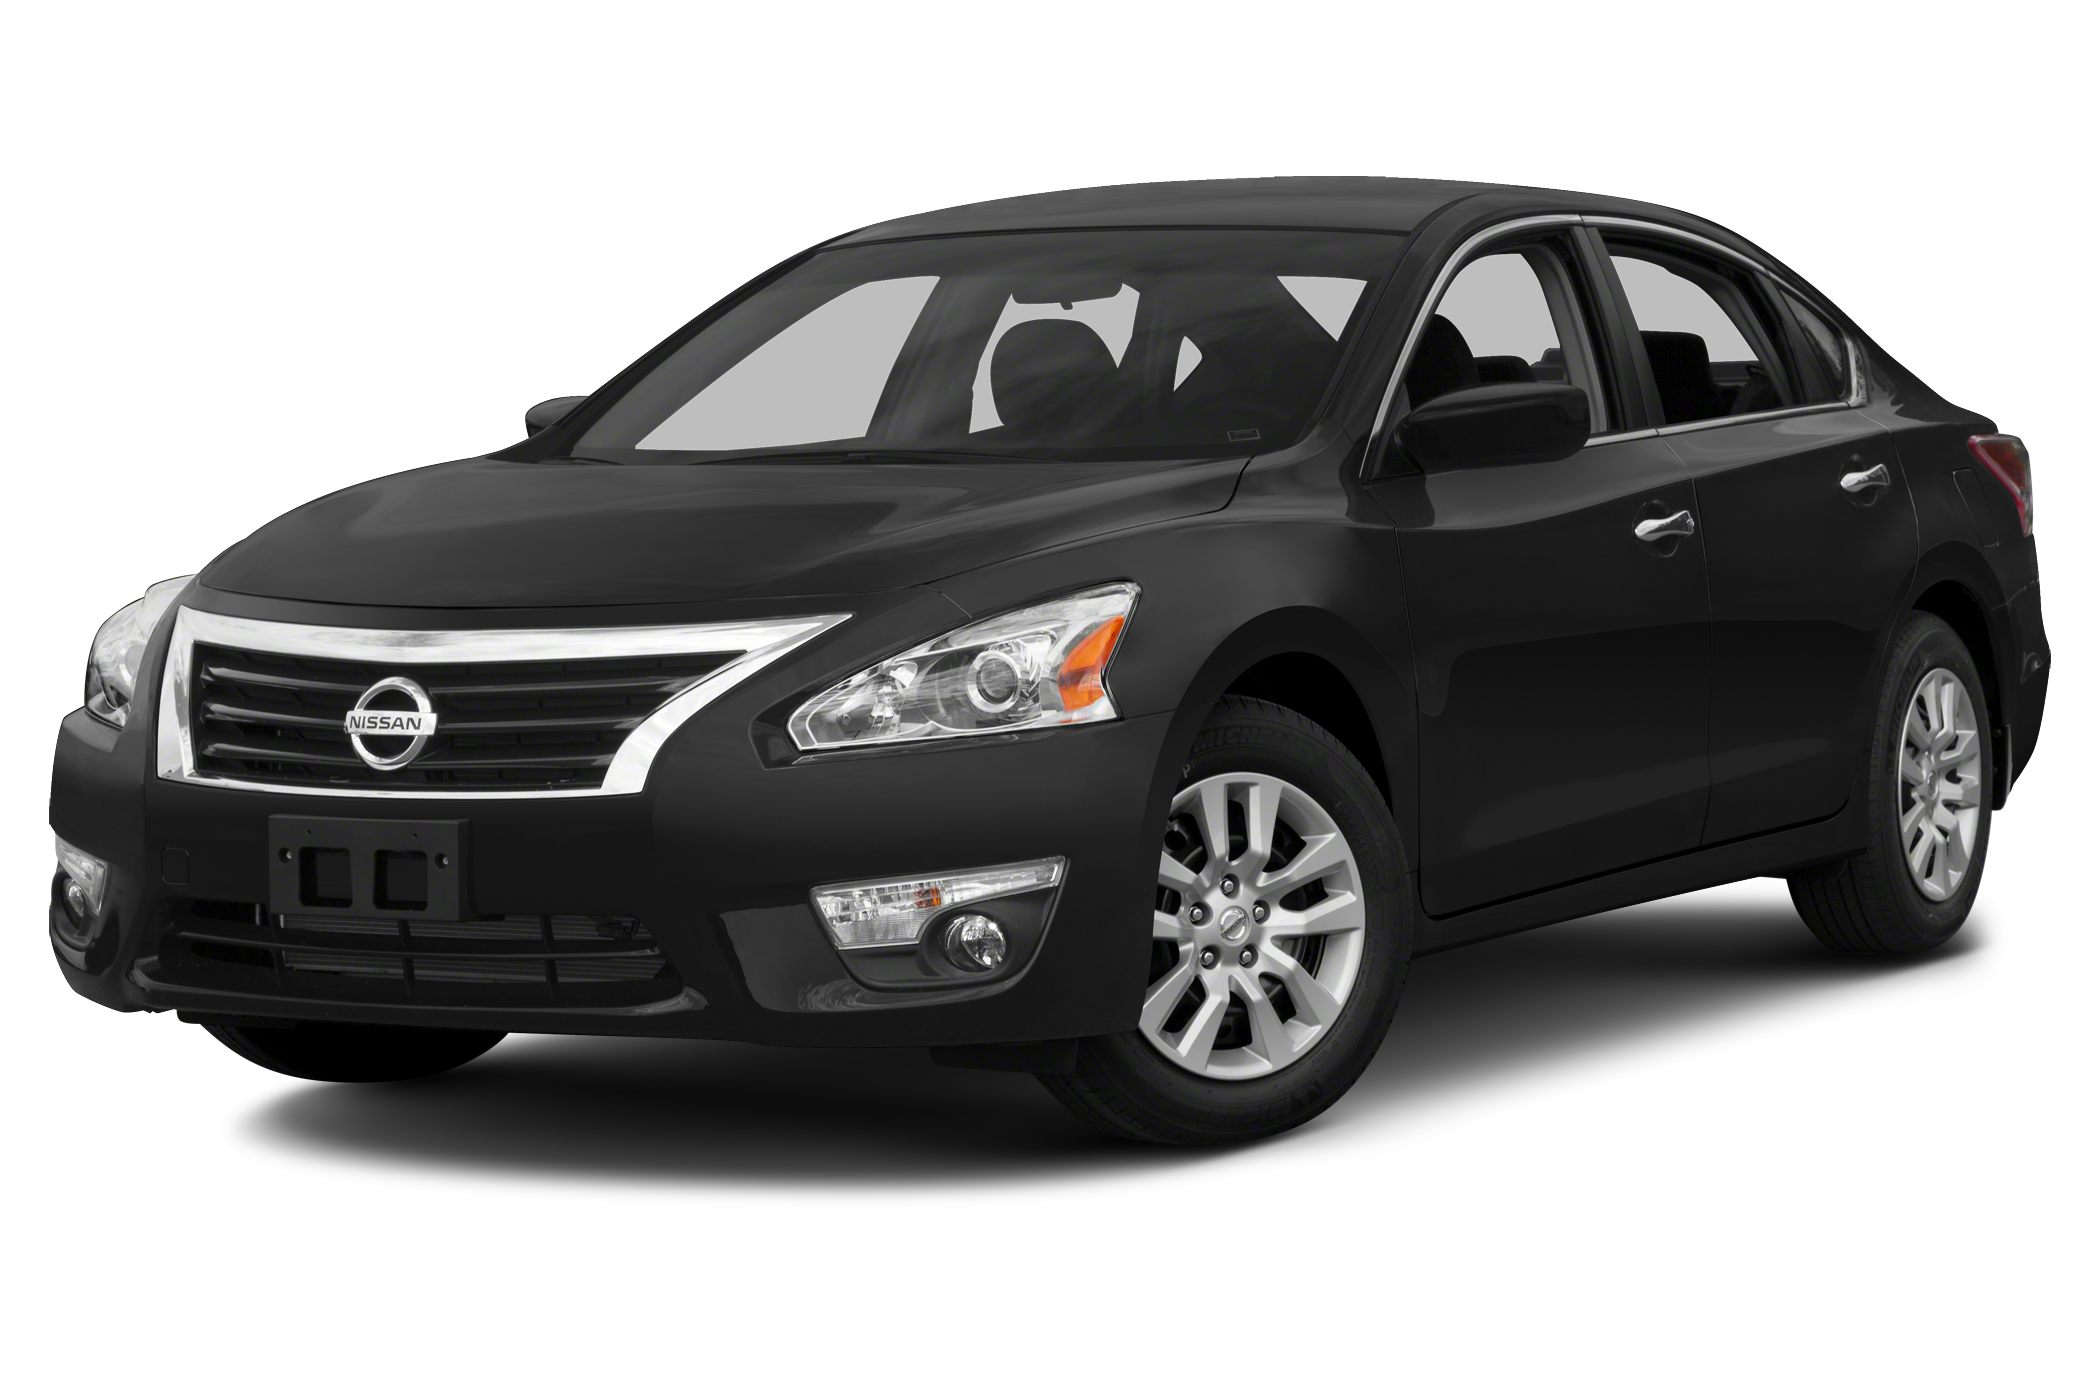 2015 Nissan Altima 2.5 S Sedan for sale in Walnut Creek for $23,710 with 0 miles.